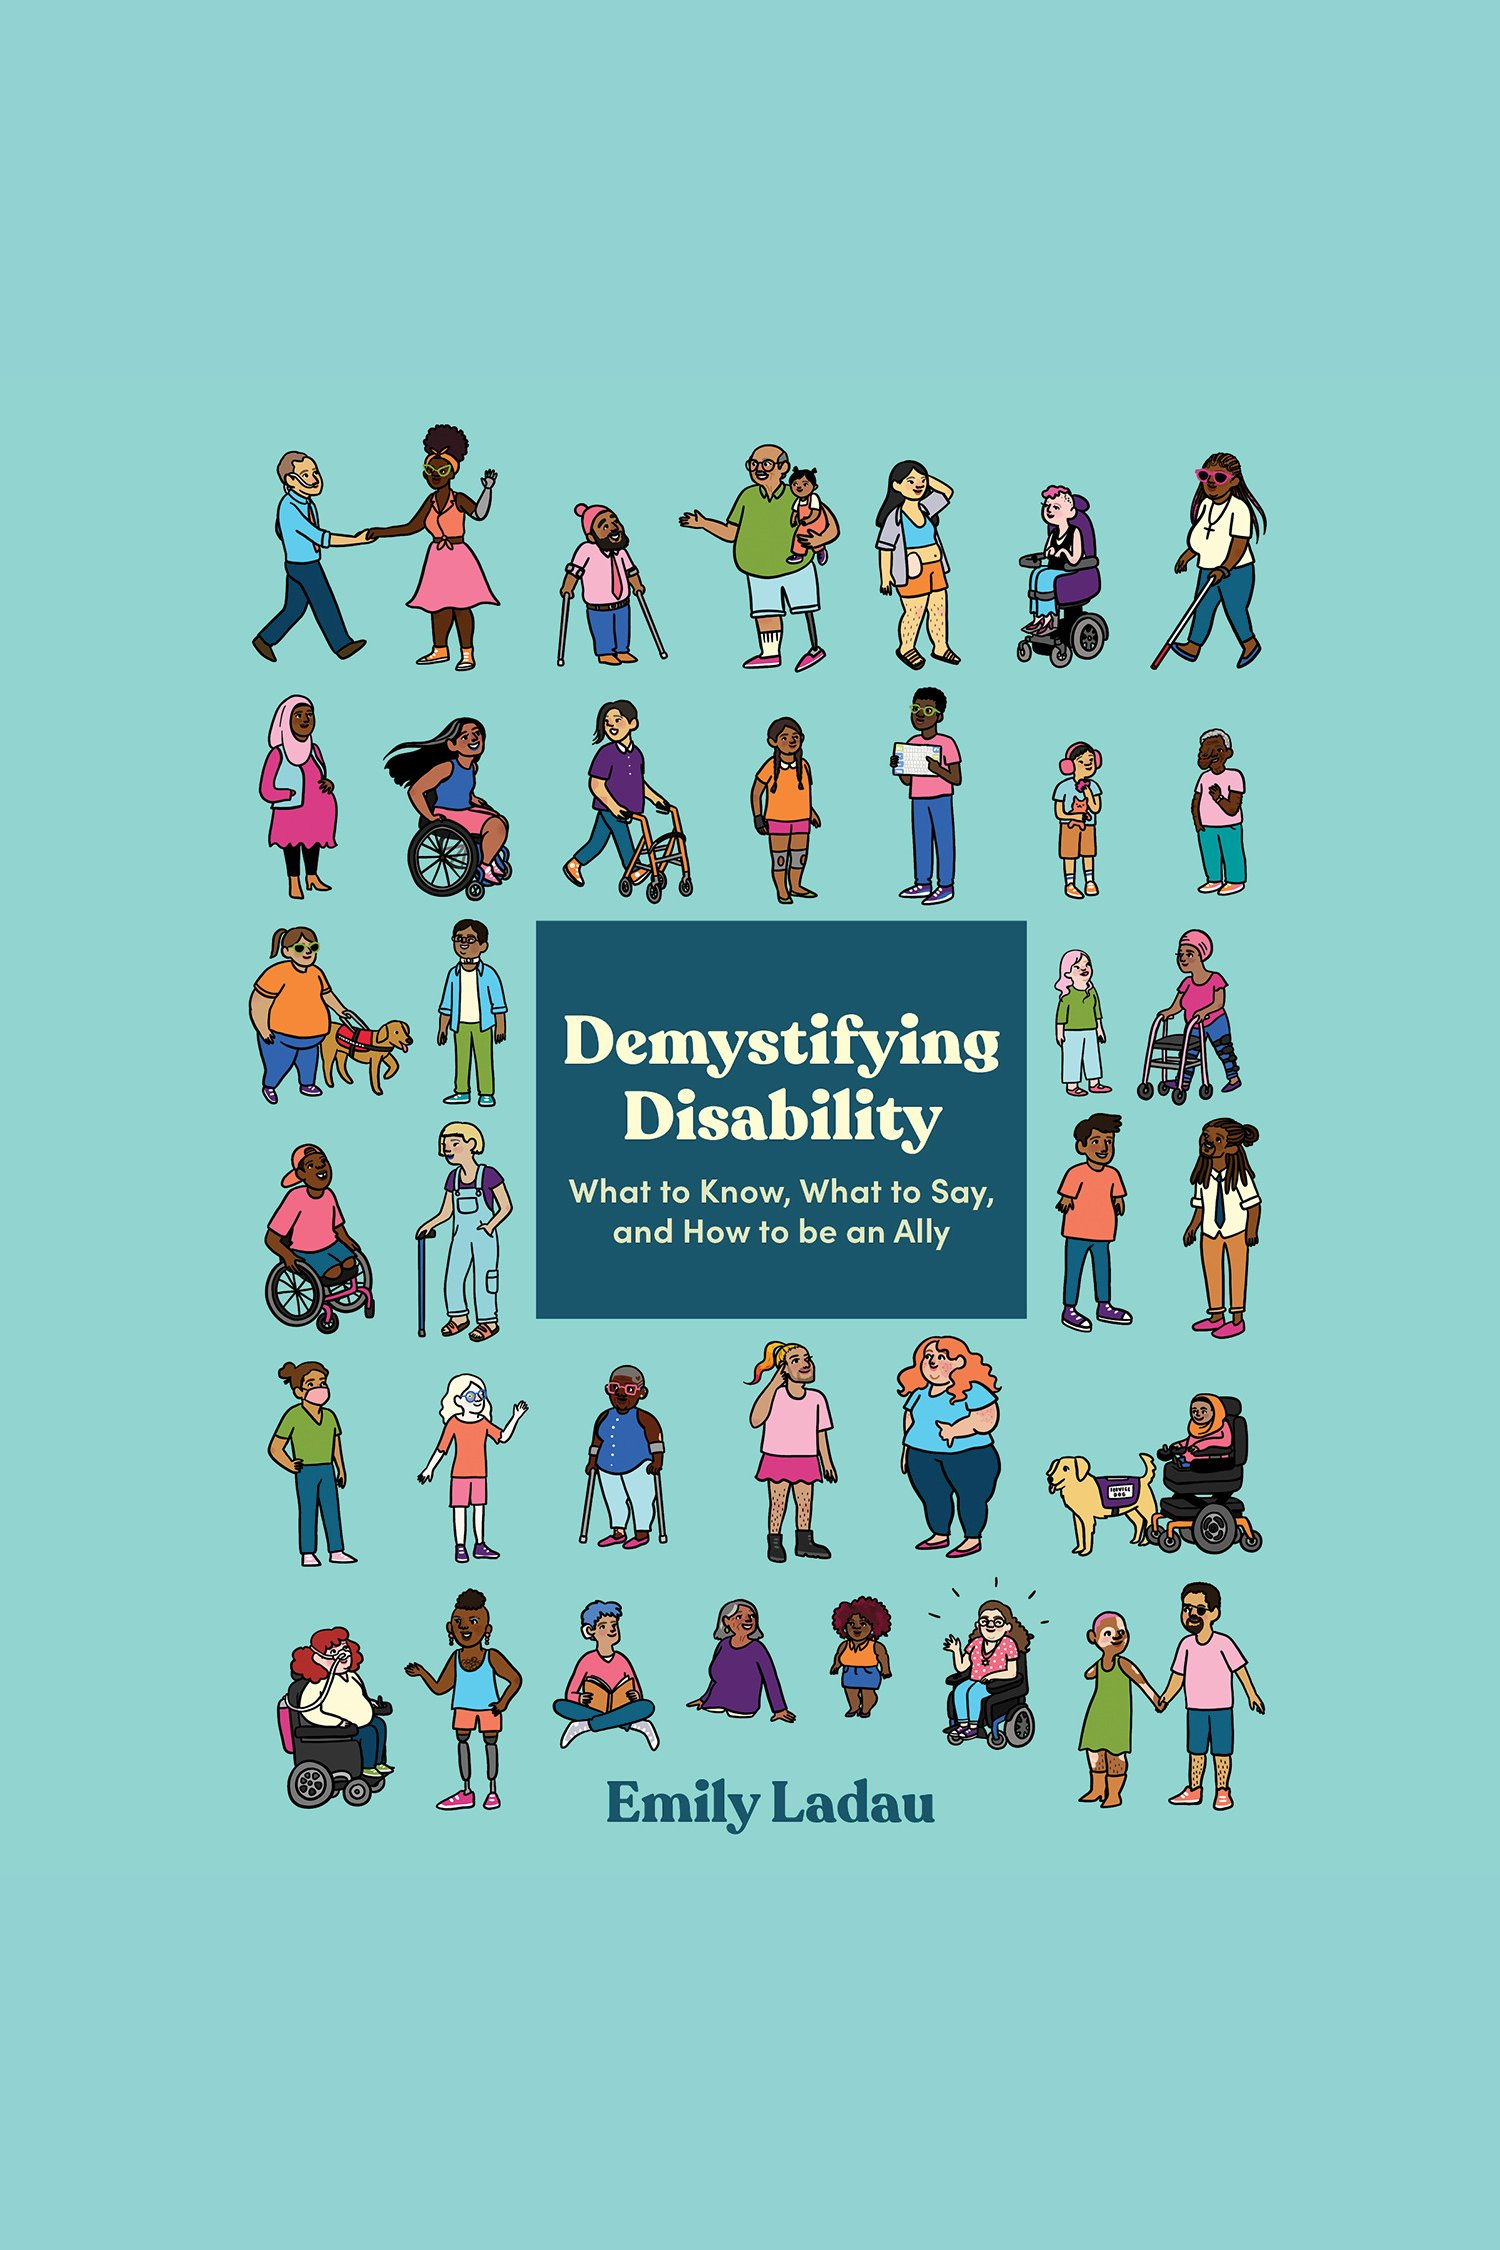 Demystifying Disability What to Know, What to Say, and How to Be an Ally